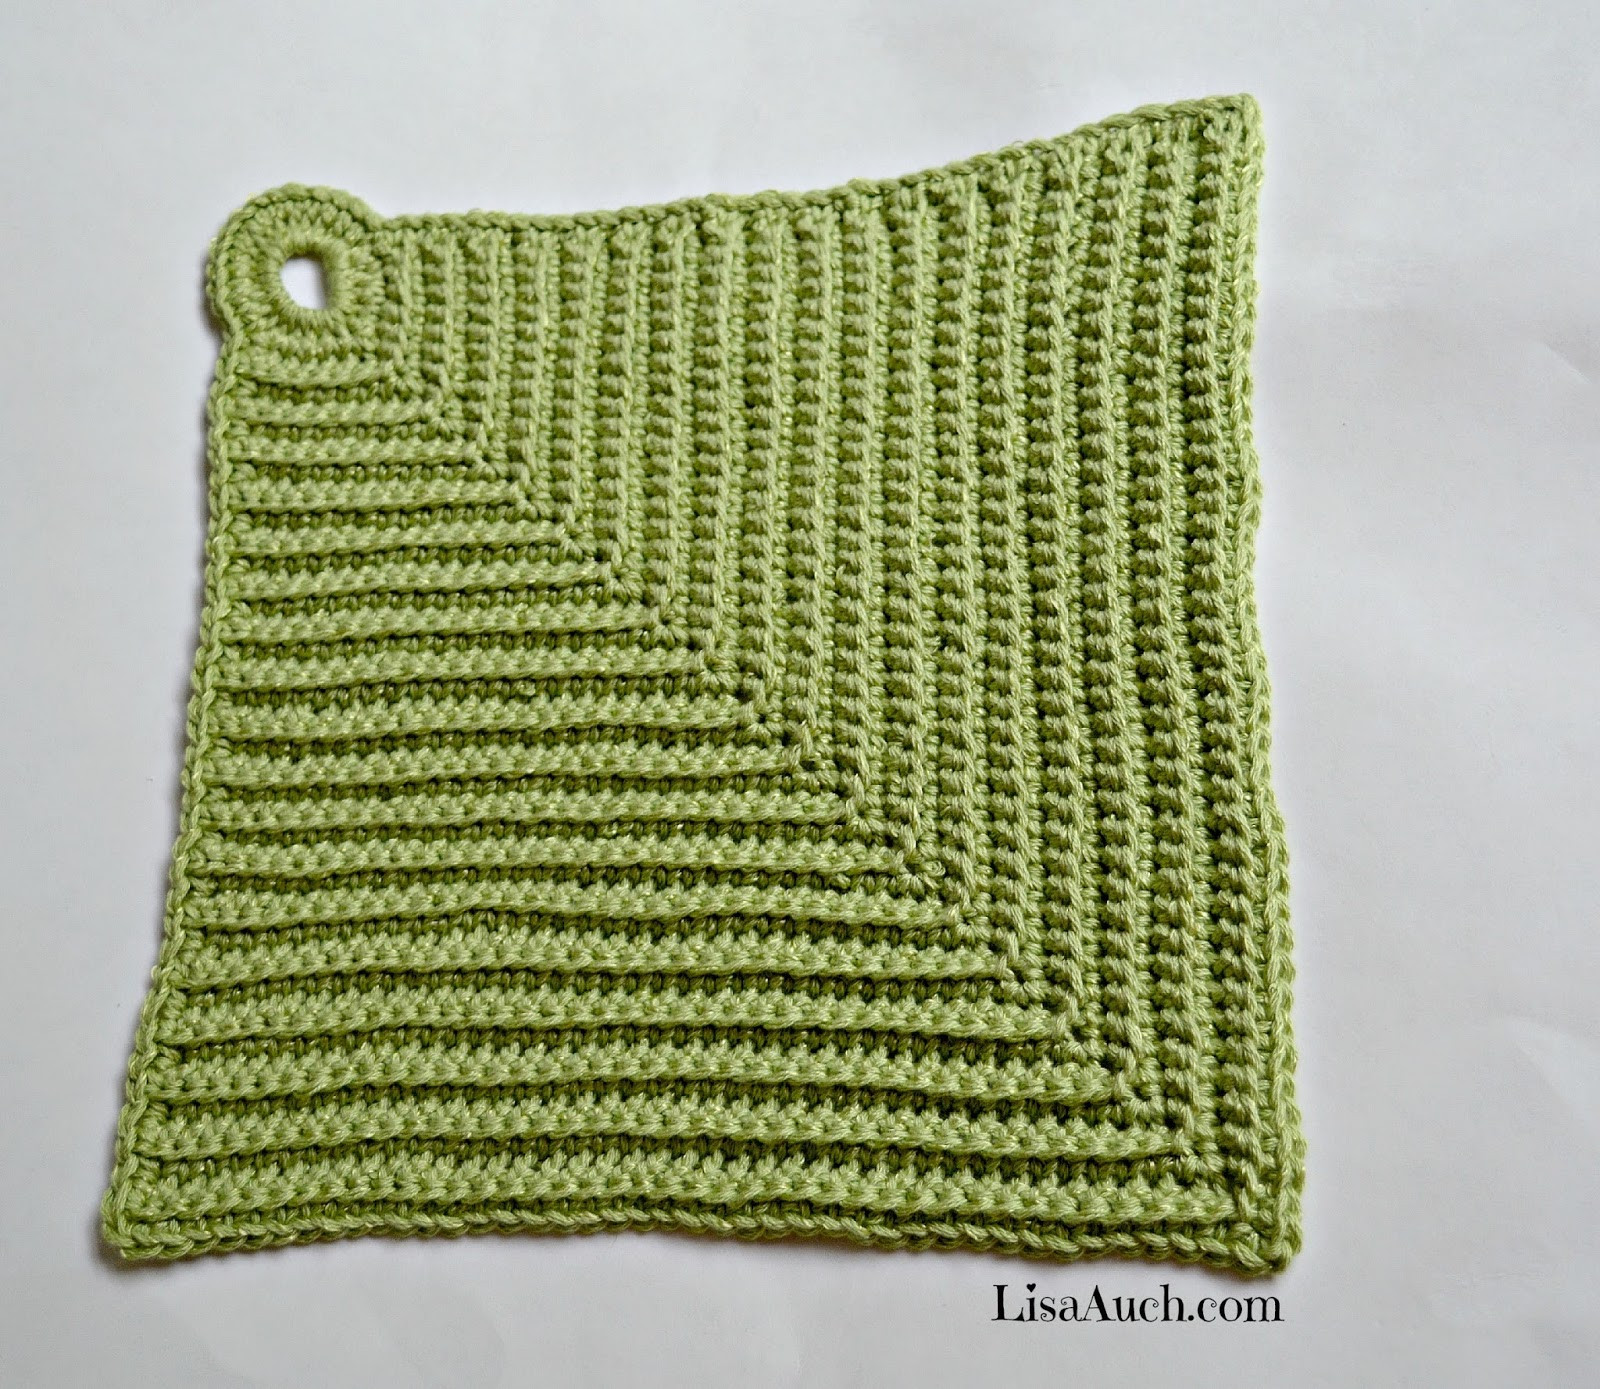 Free Easy Crochet Patterns Beautiful Free Crochet Patterns and Designs by Lisaauch Free Easy Of Superb 49 Images Free Easy Crochet Patterns